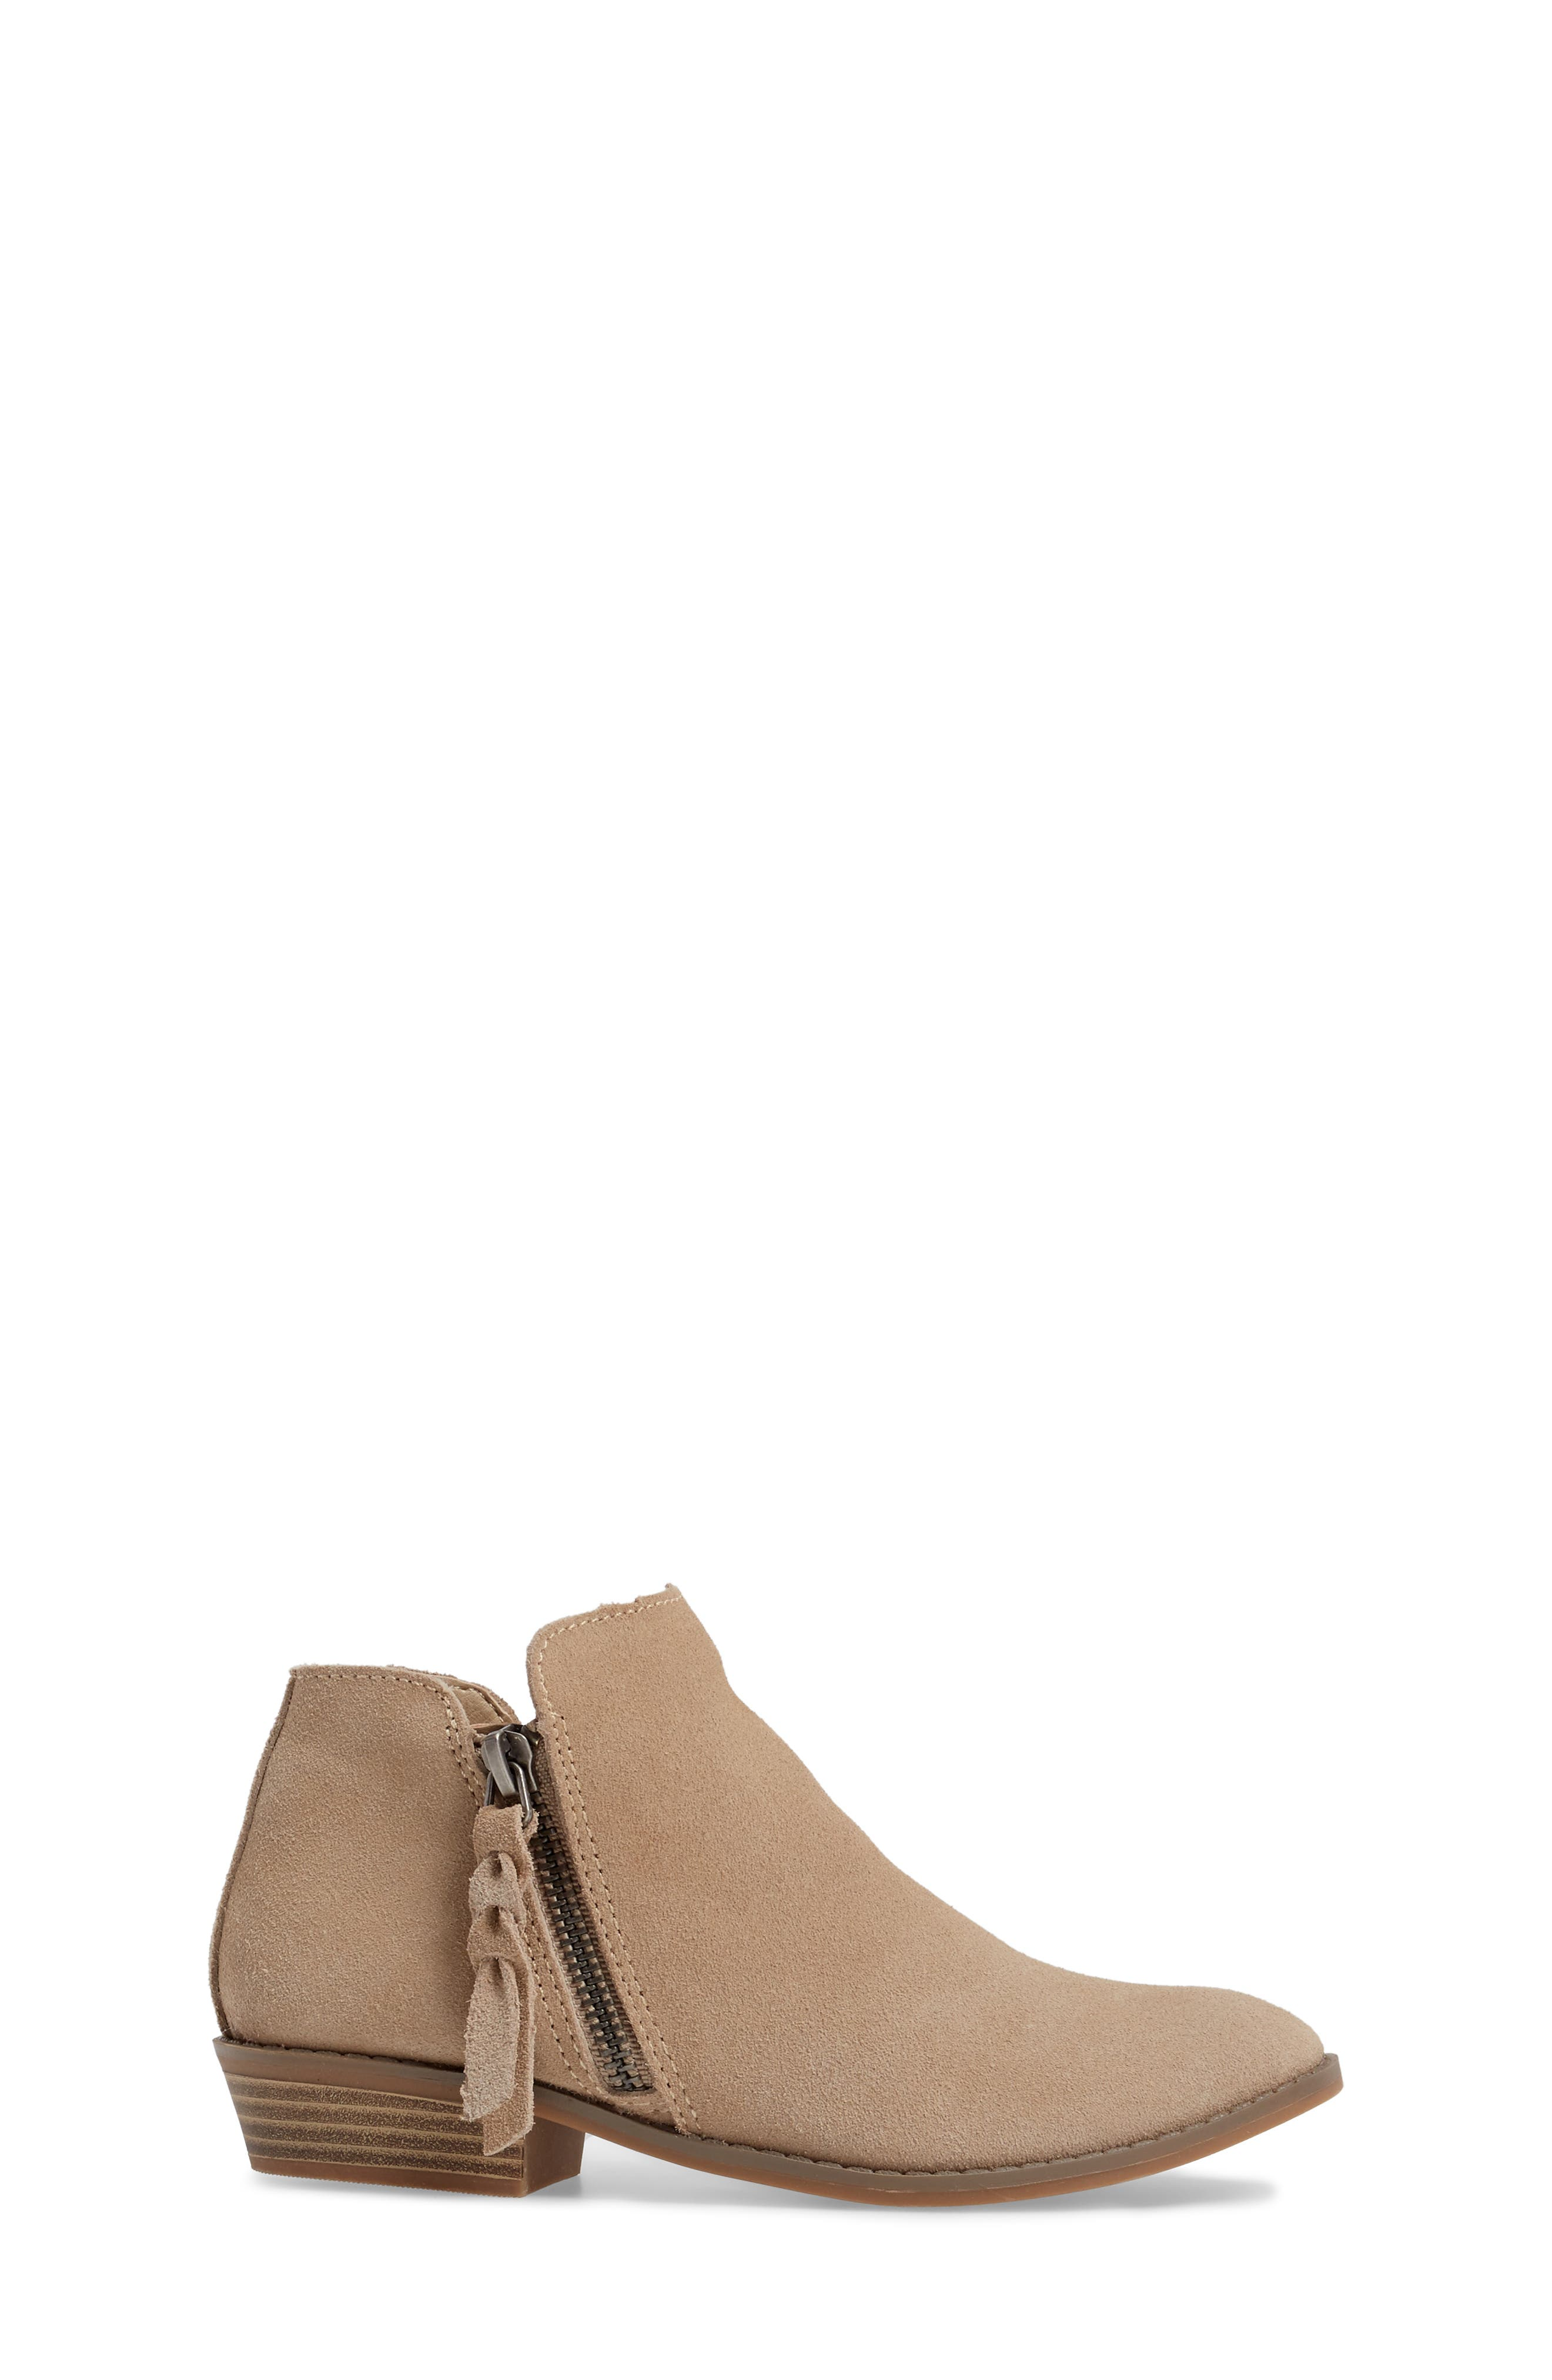 Sia Double-Zip Bootie,                             Alternate thumbnail 3, color,                             Sand Suede